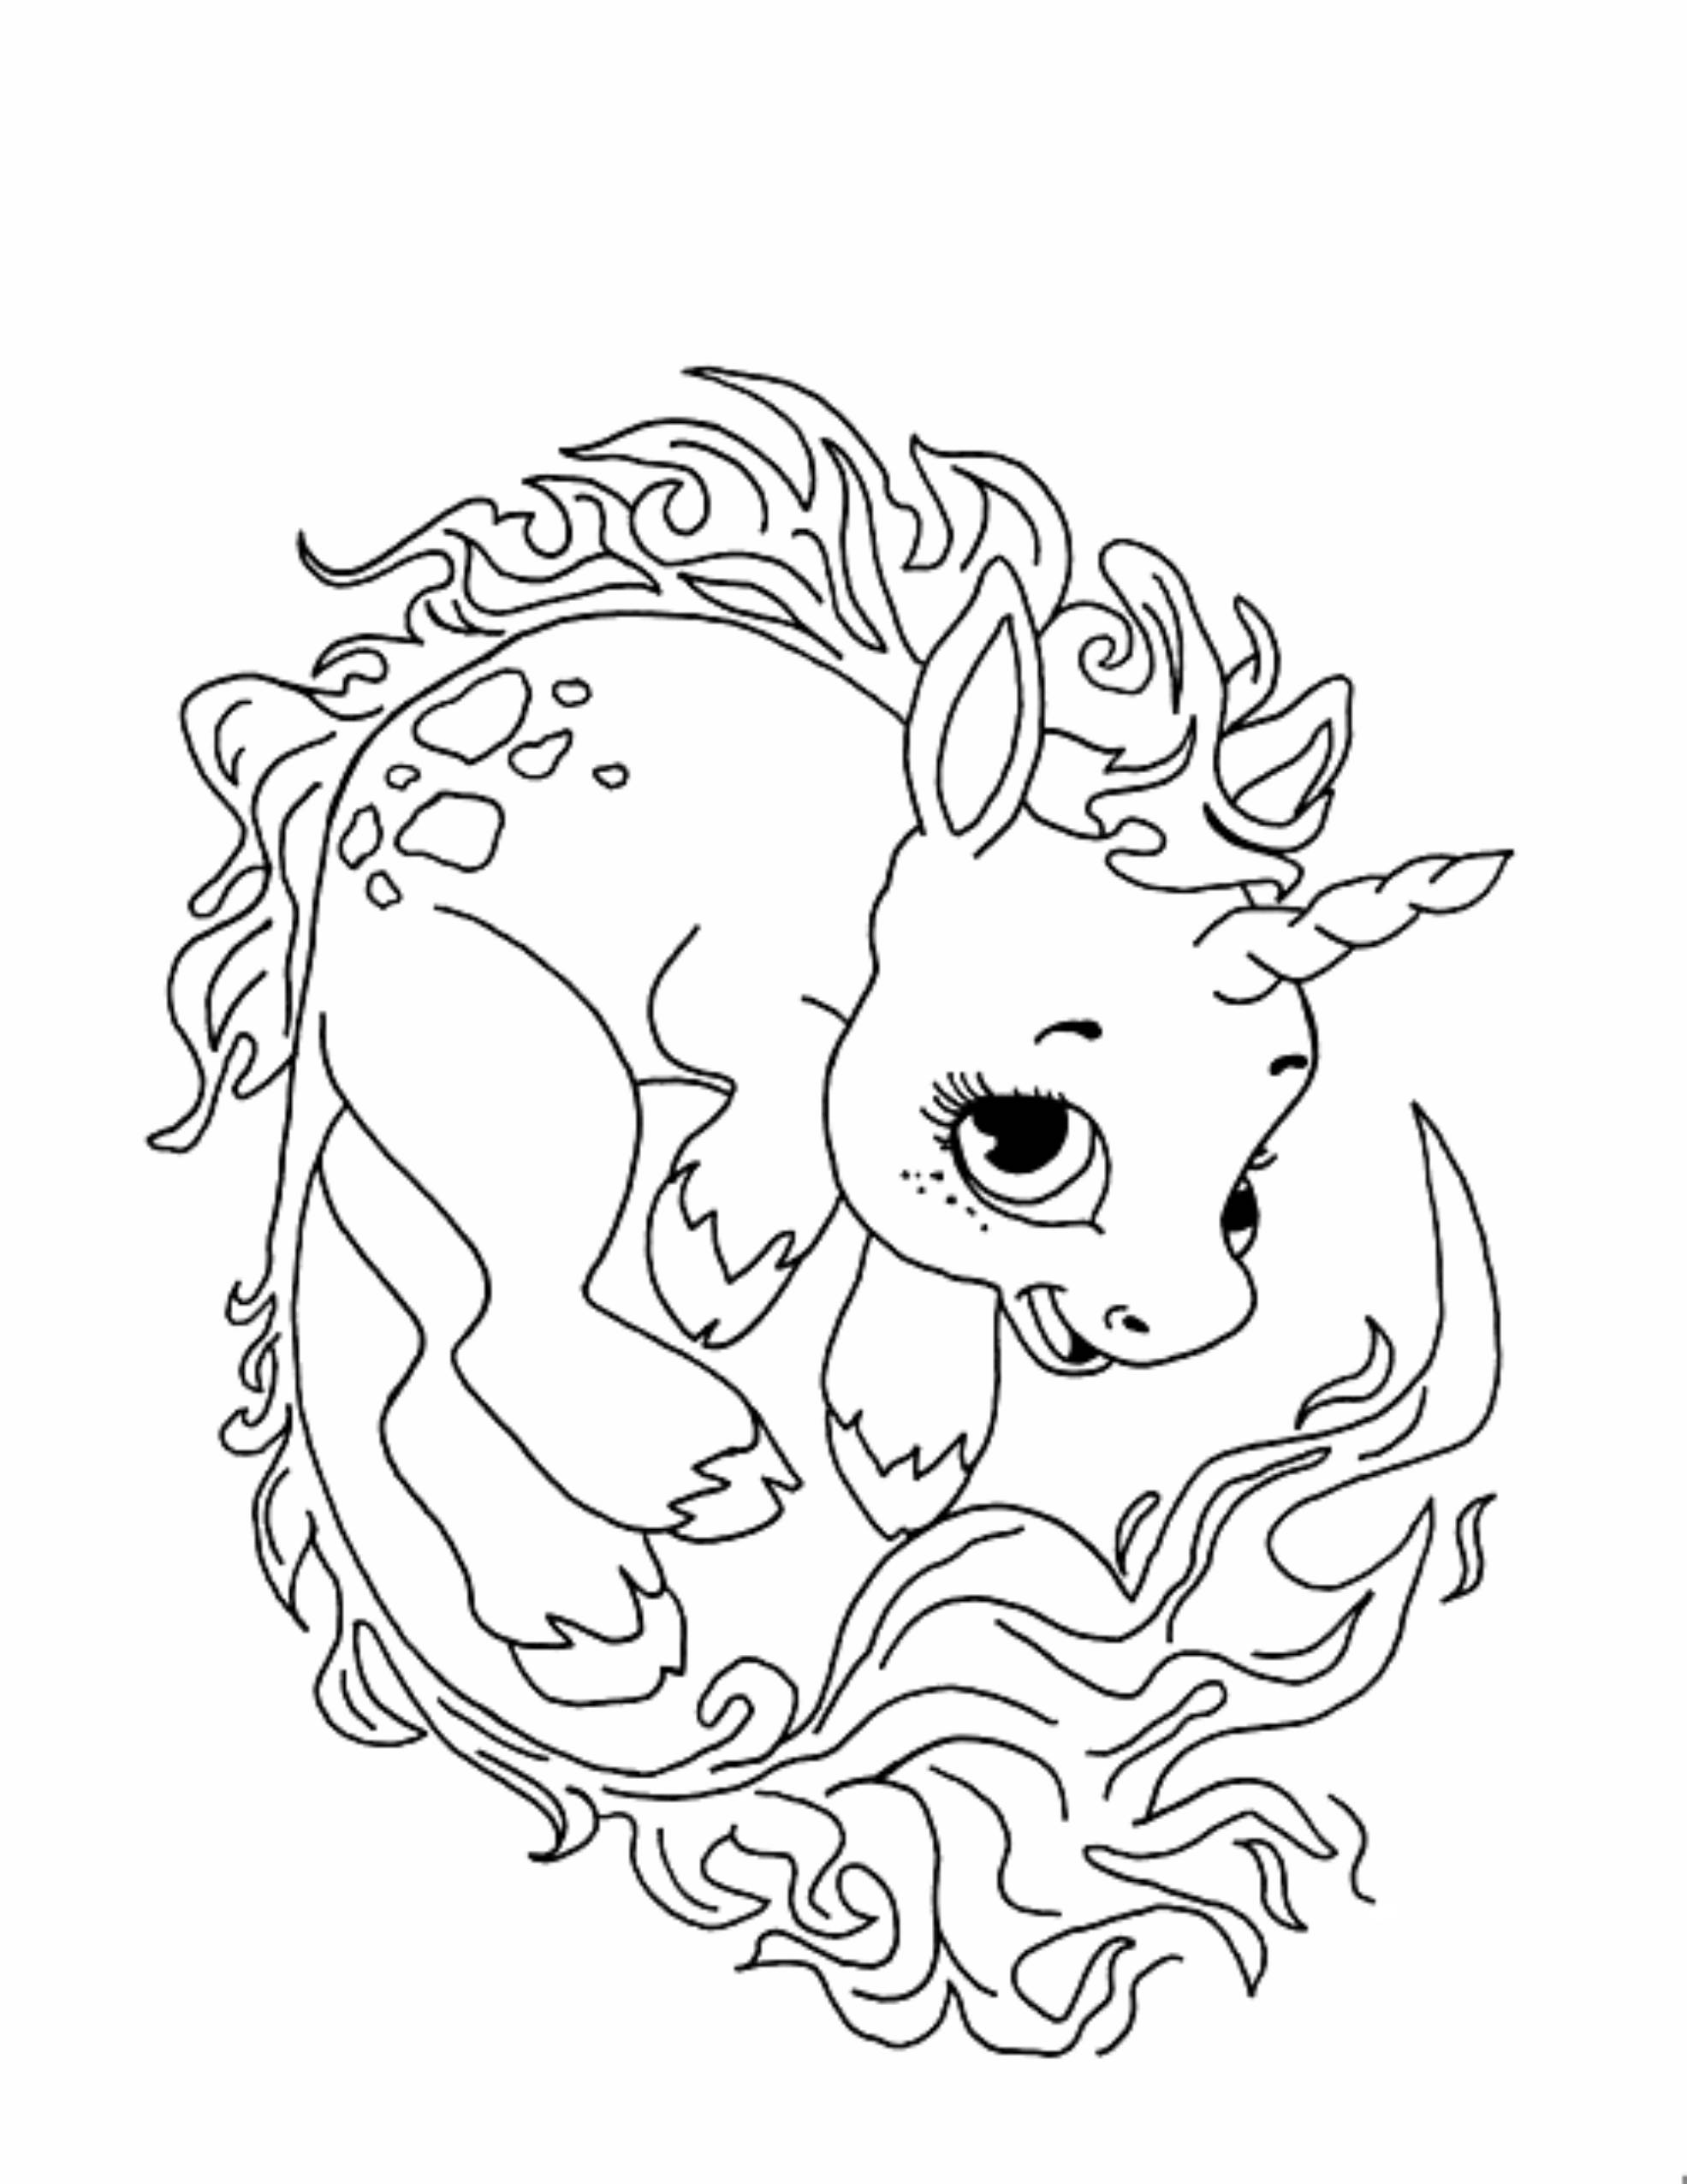 free coloring sheets unicorn baby unicorn coloring pages pictures  whitesbelfast sheets unicorn free coloring